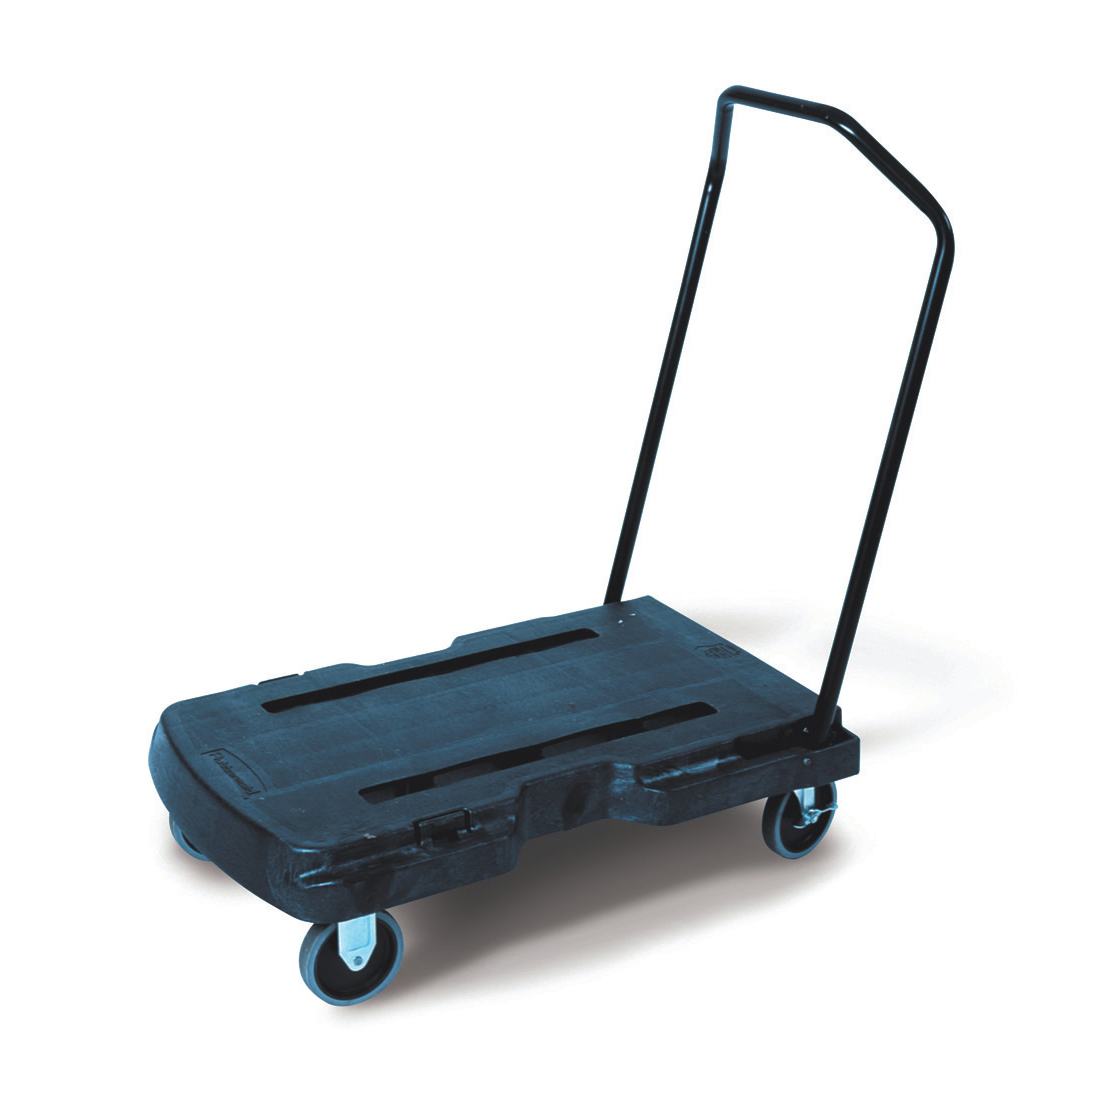 Rubbermaid Triple Platform Truck with Castors 2 Fixed 2 Swivel Capacity 180kg L826xW521mm Ref 4401